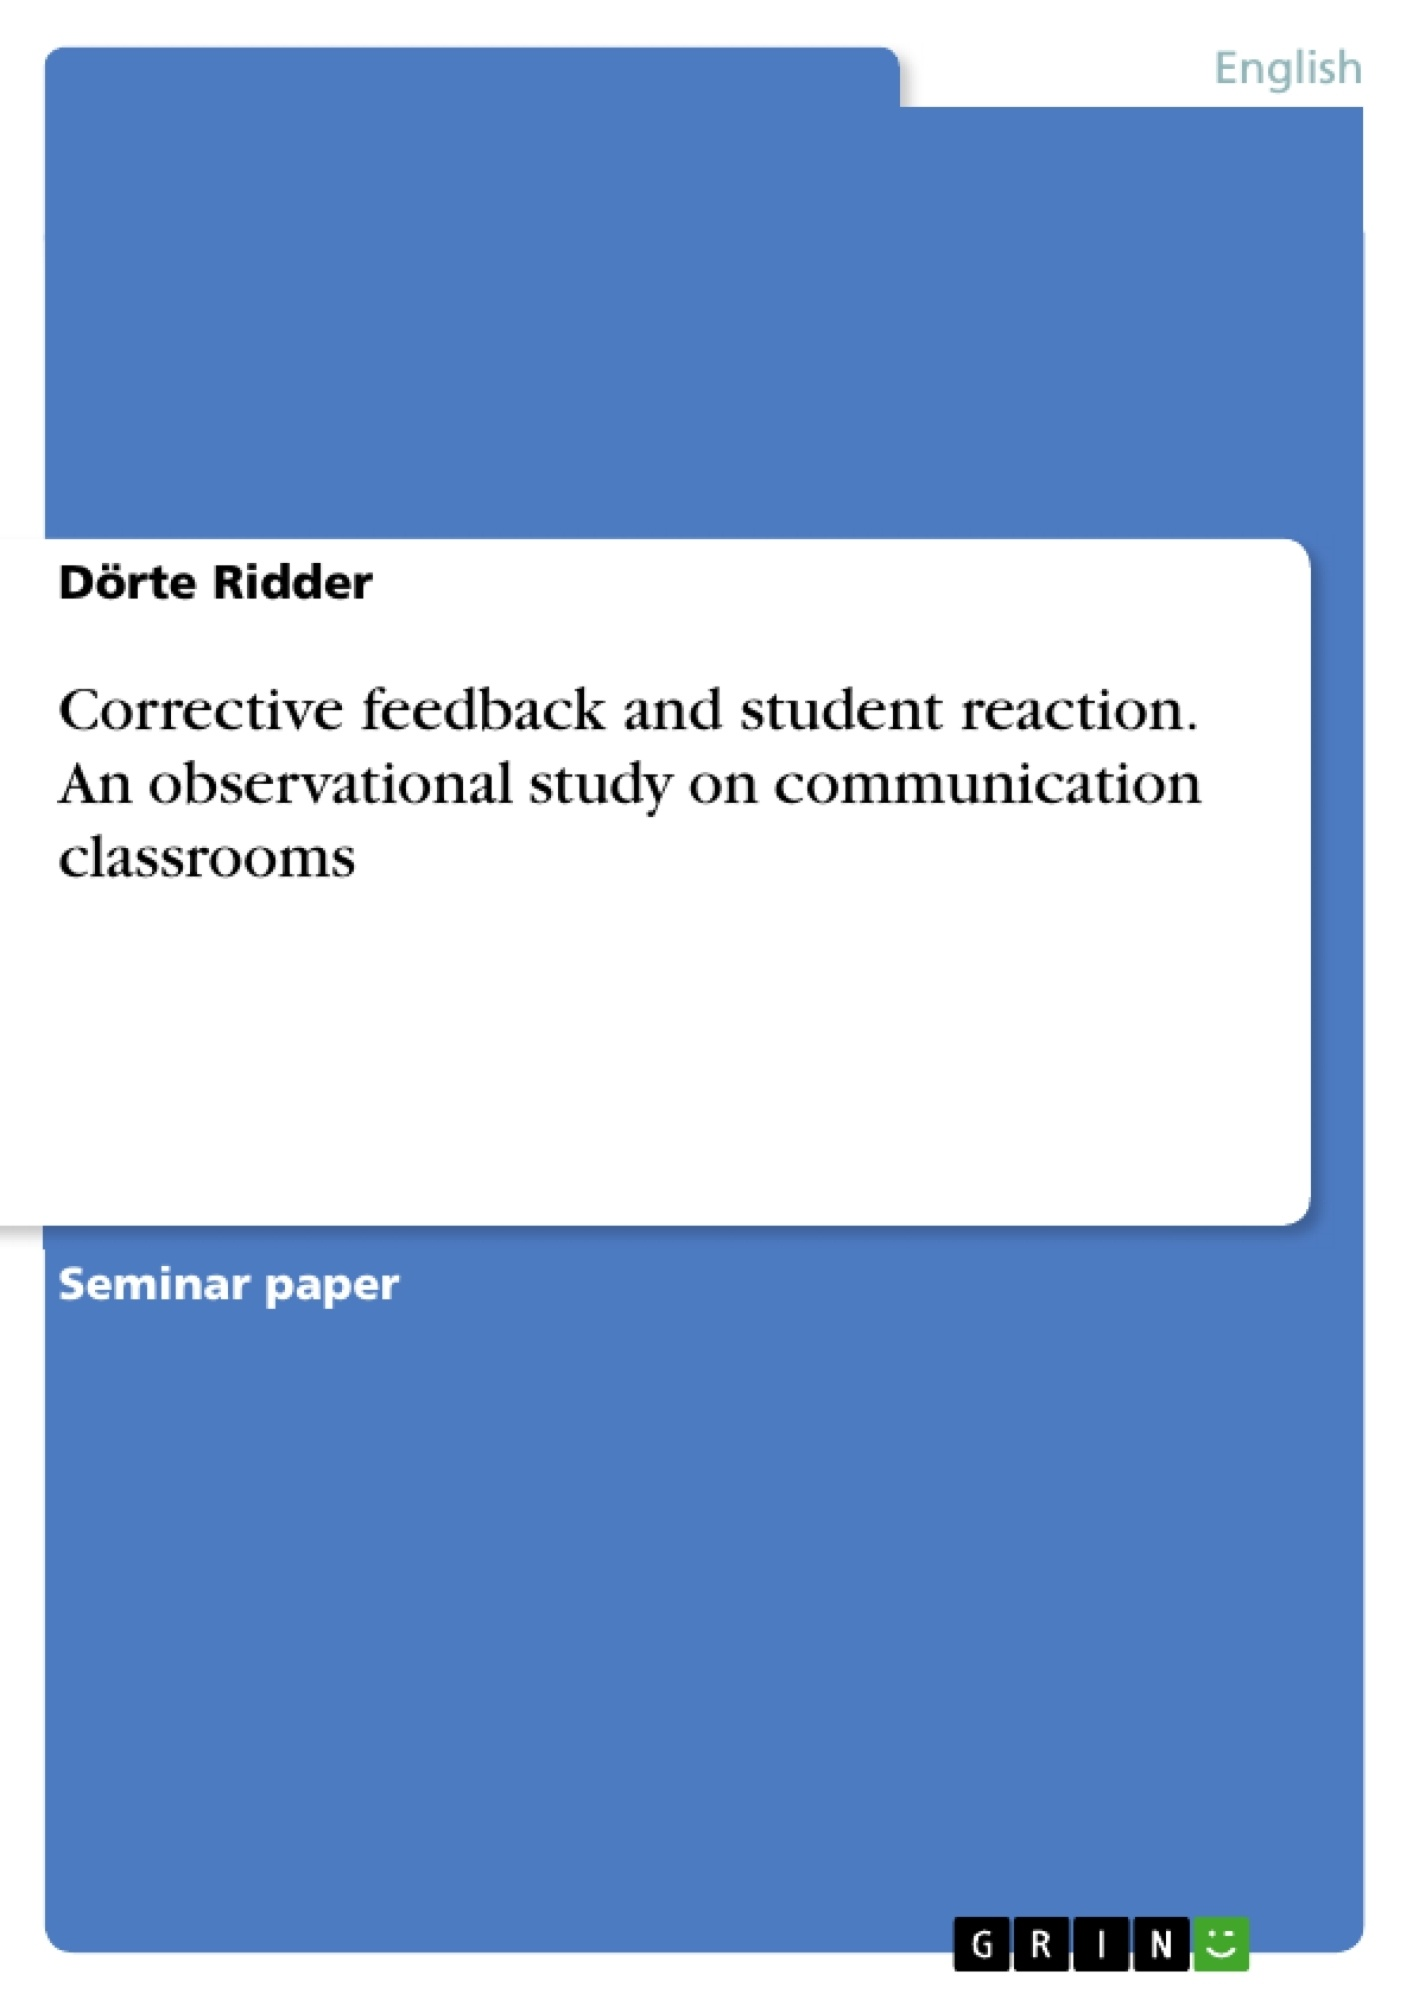 Title: Corrective feedback and student reaction. An observational study on communication classrooms